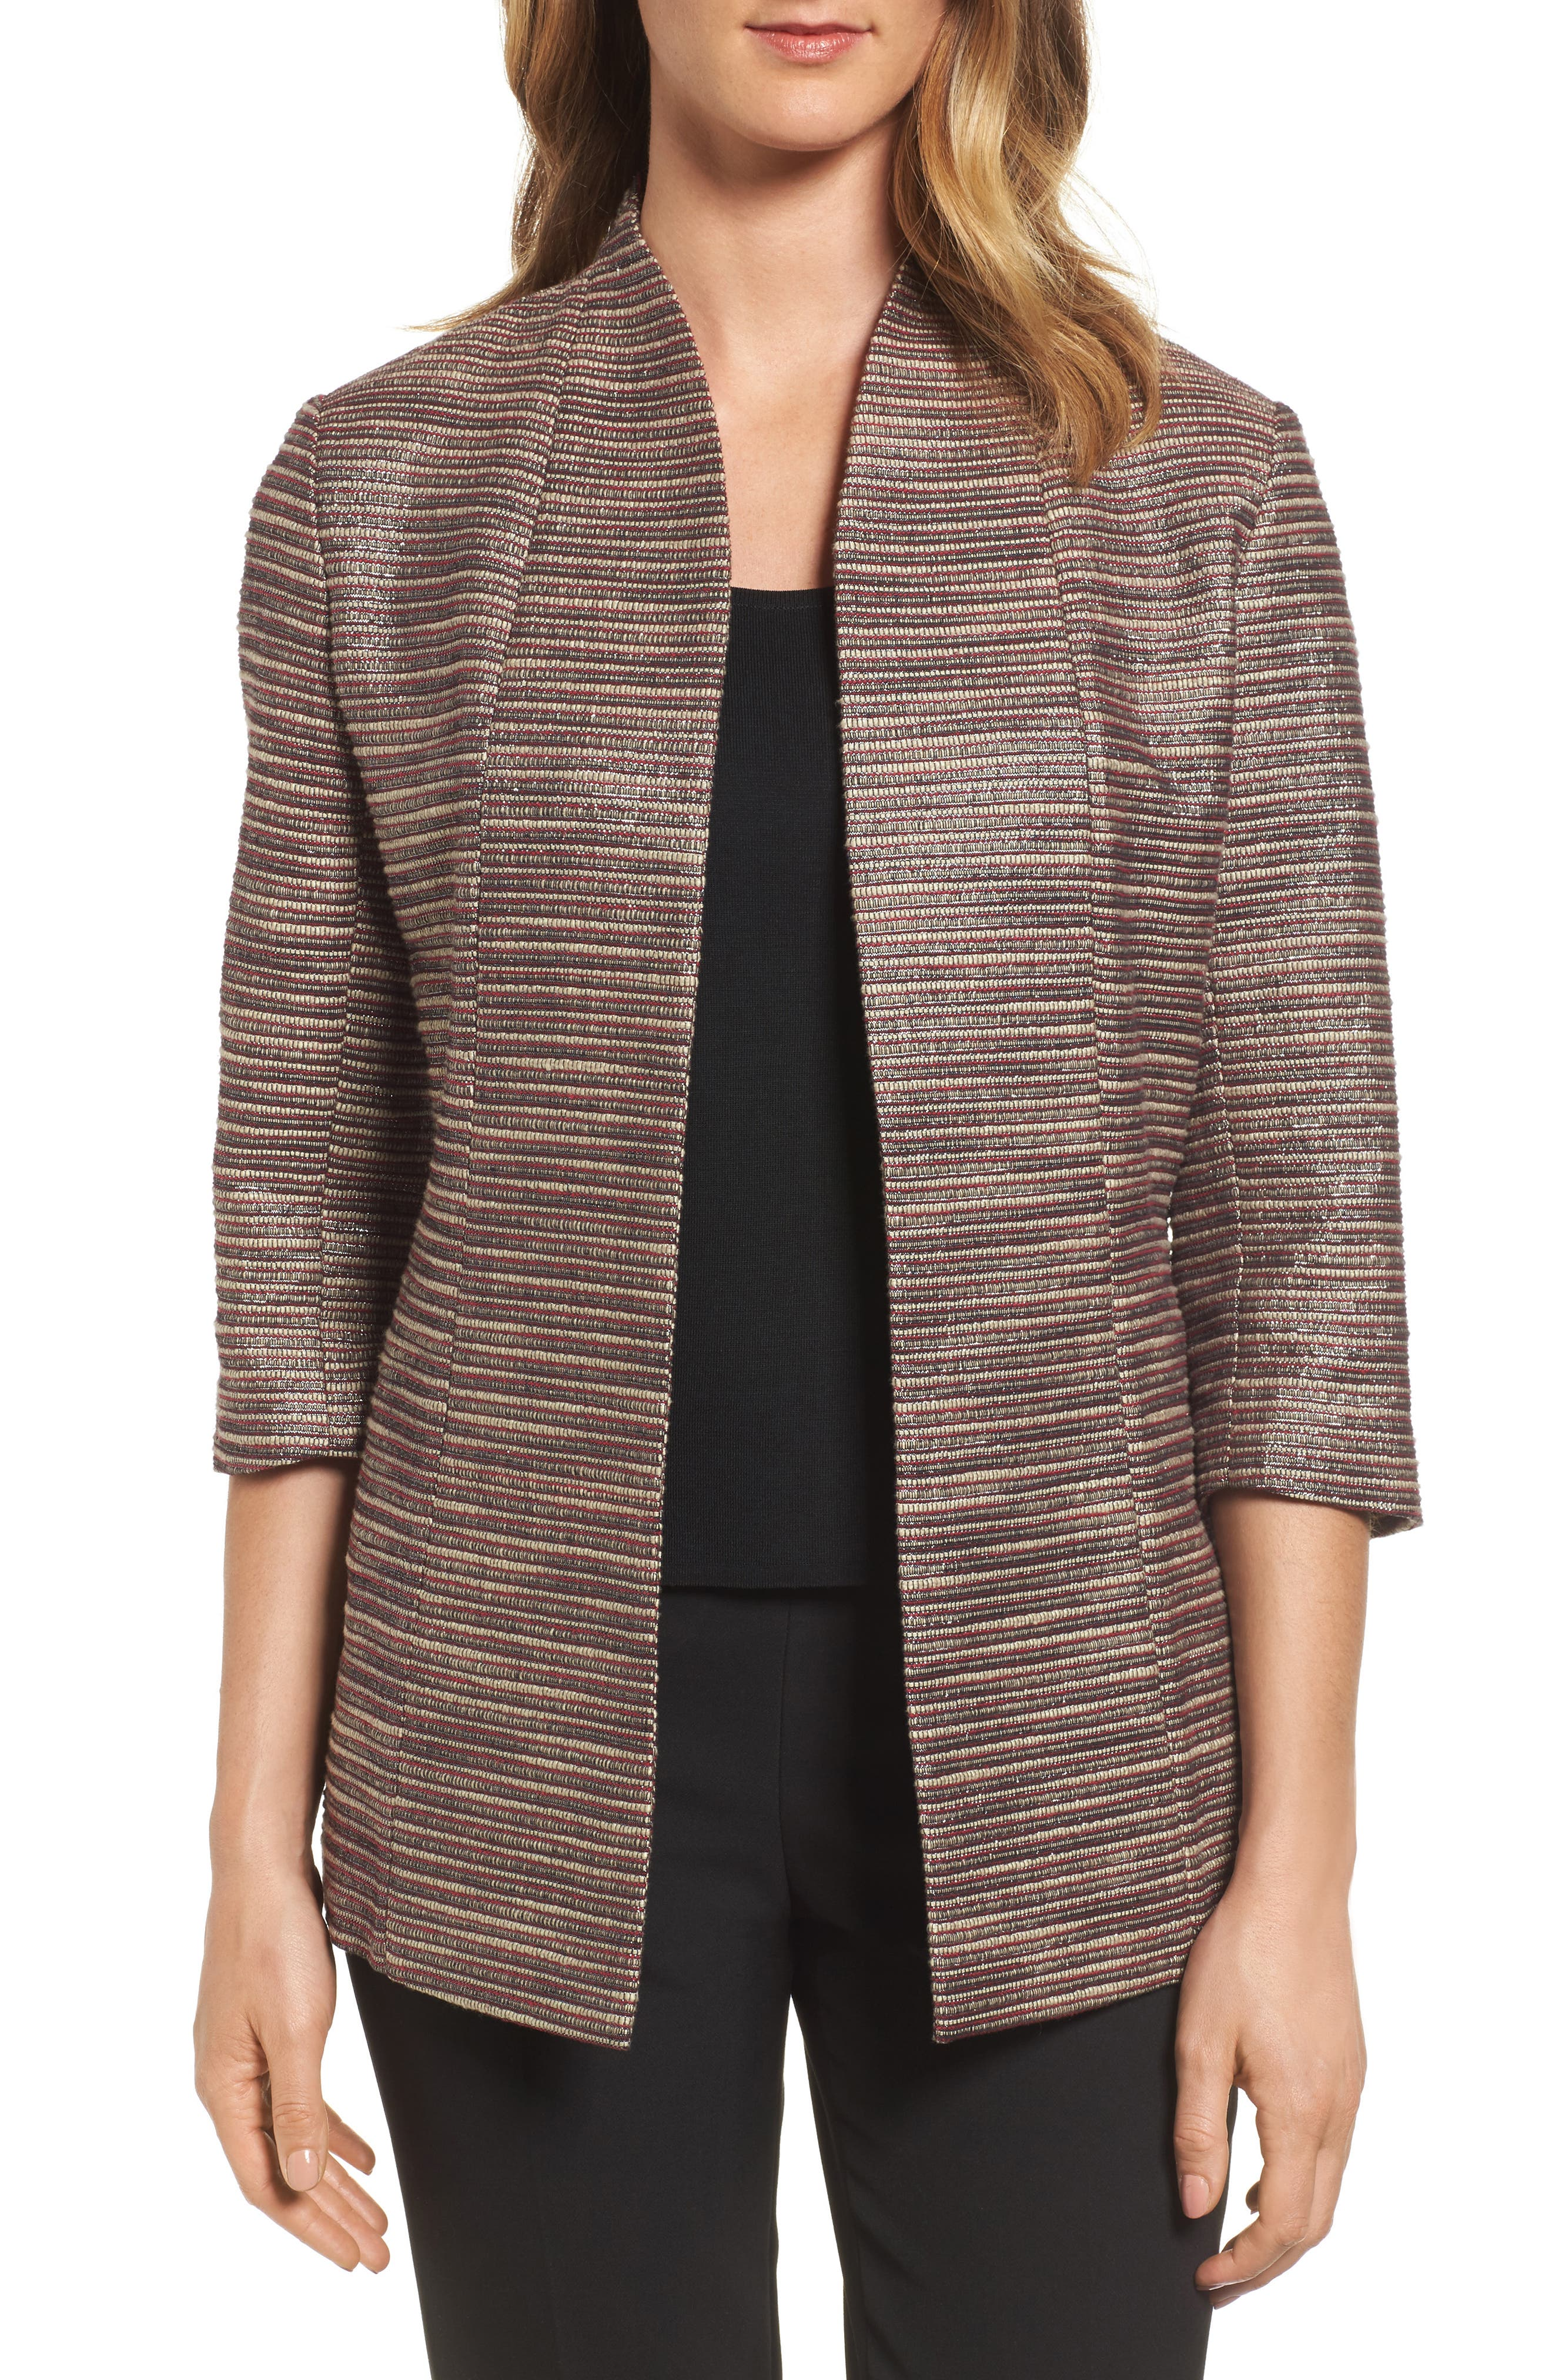 Main Image - Ming Wang Ribbed Metallic Tweed Jacket